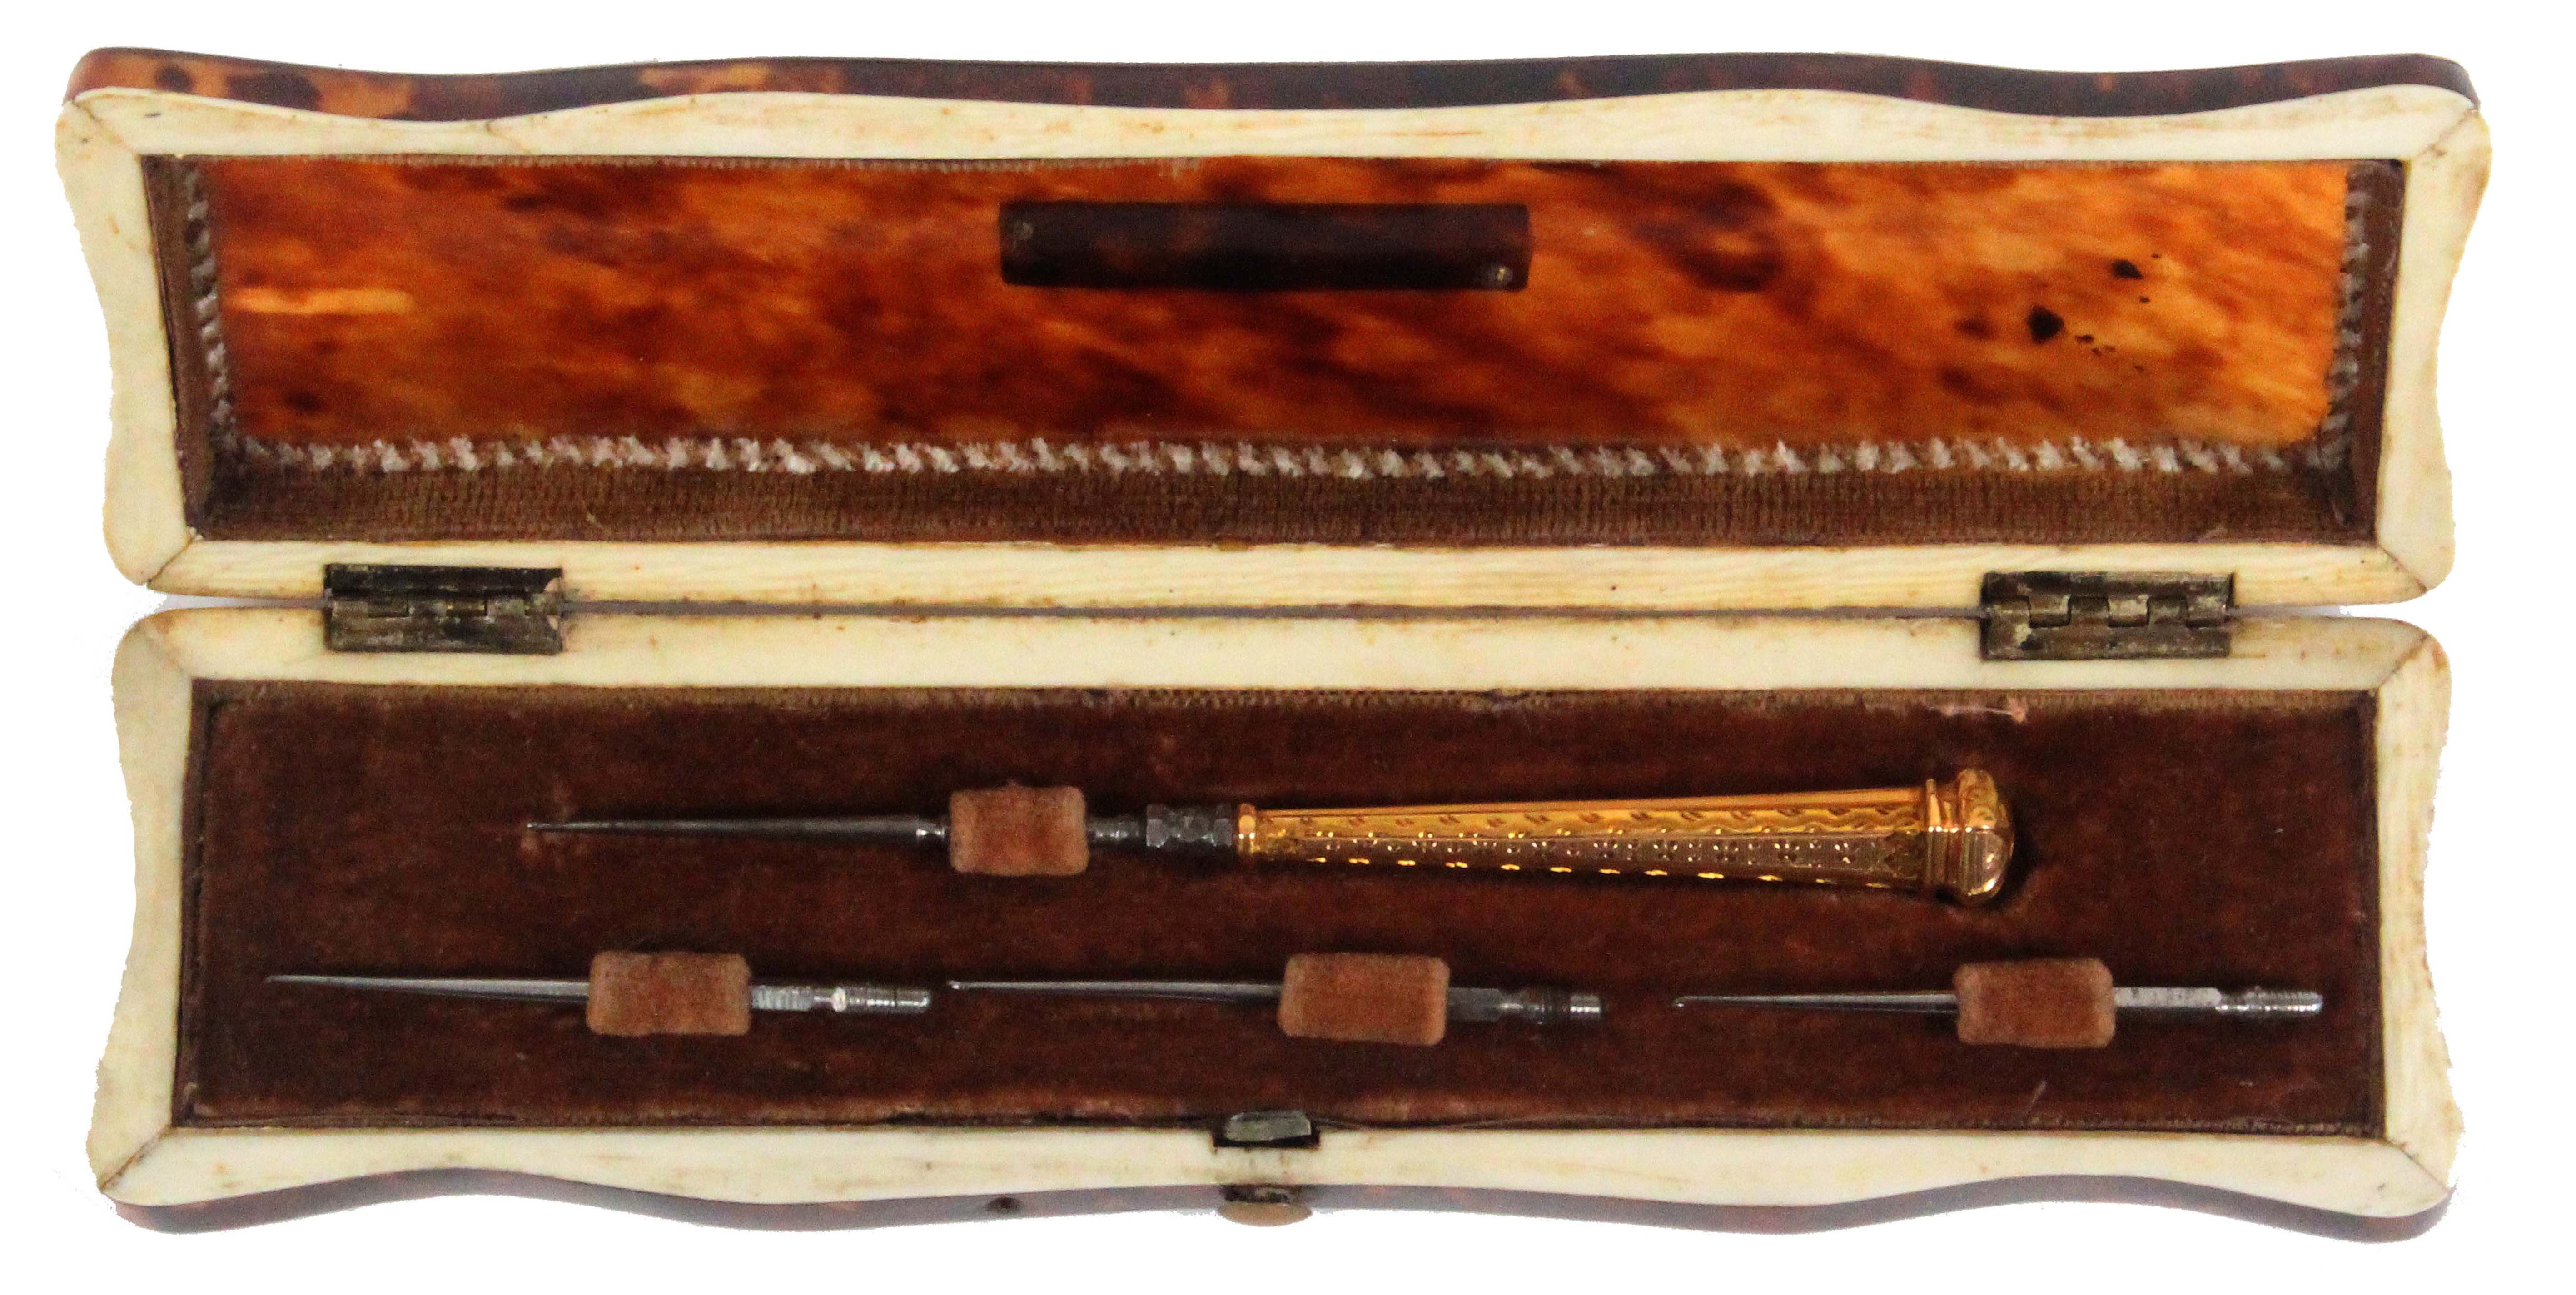 A fine gold handled tambouring set, circa 1850, contained in a rectangular tortoiseshell case, the